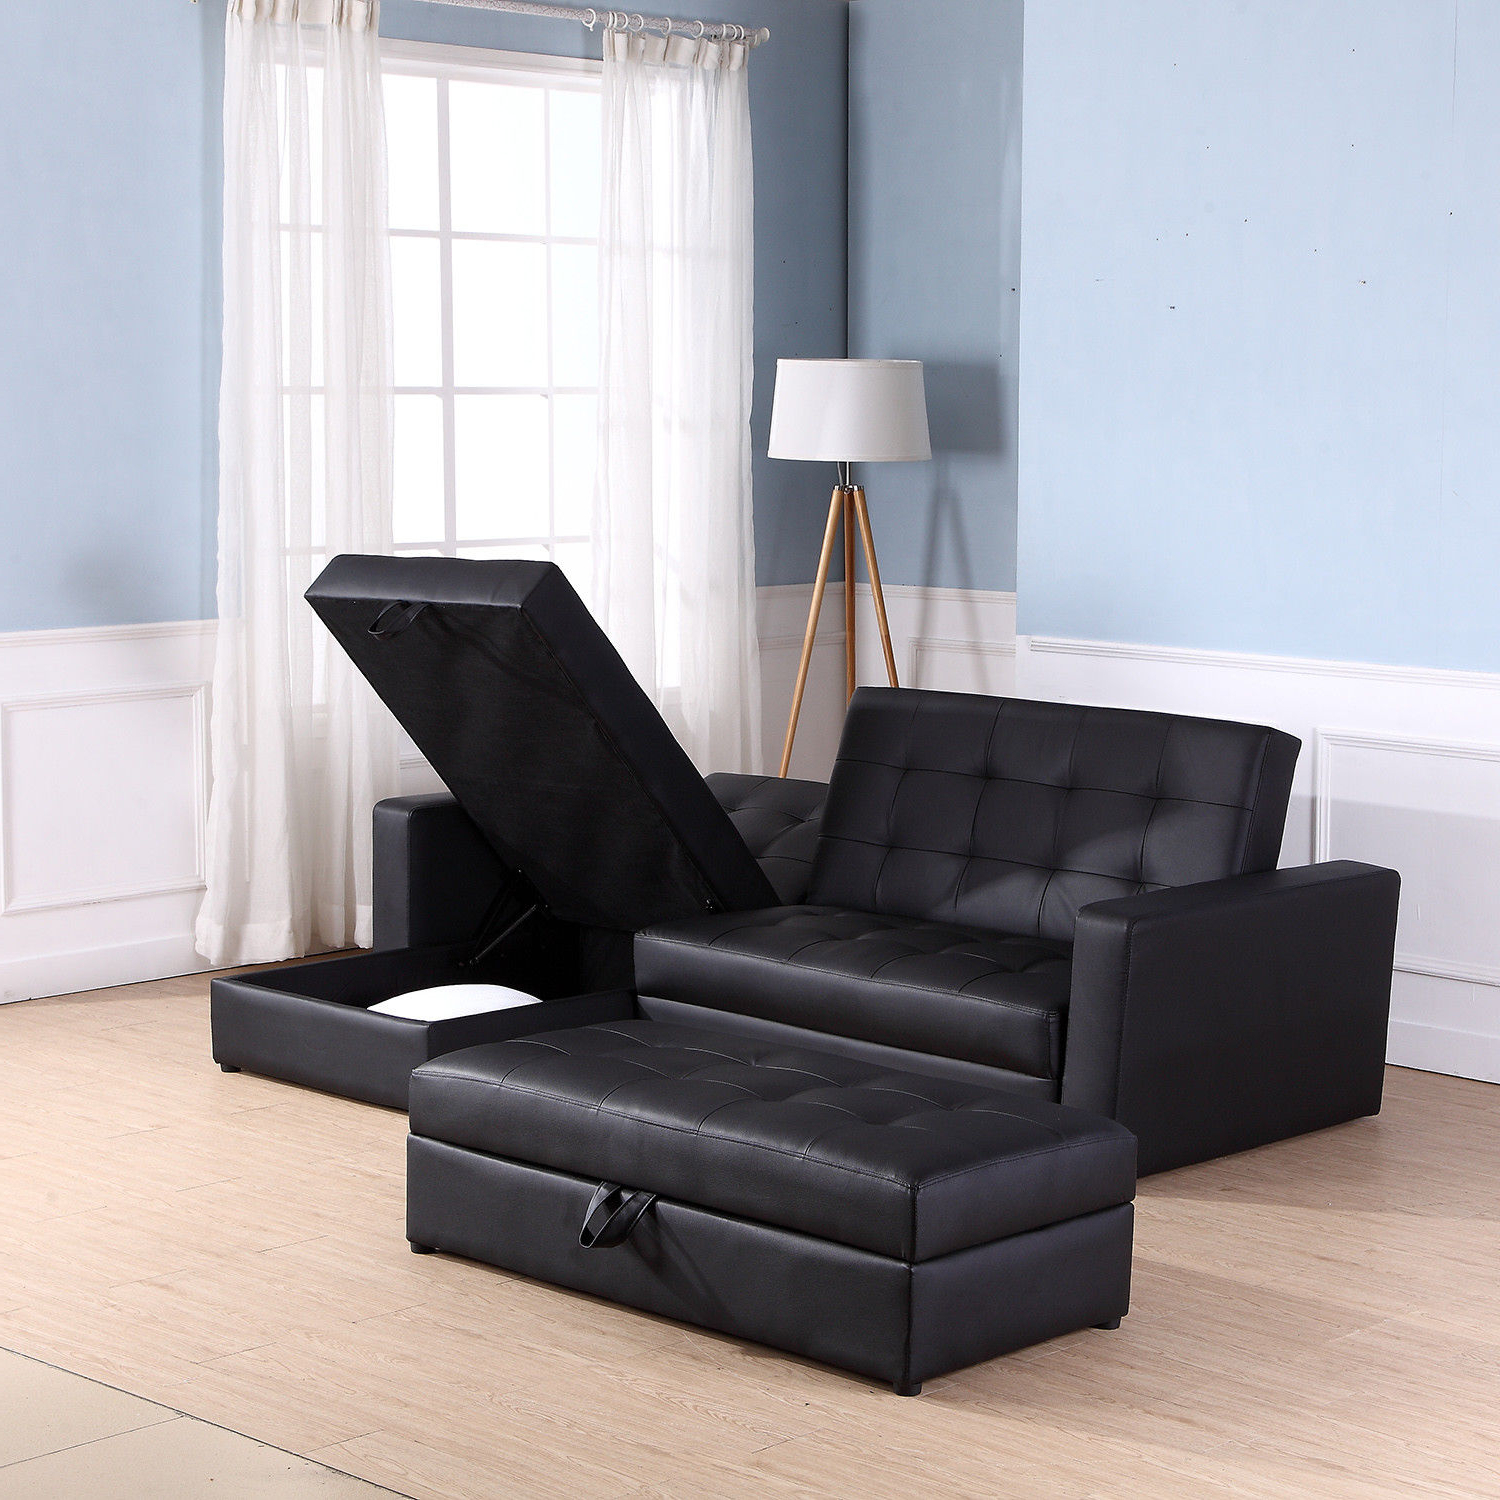 Most Popular Sofa Bed Storage Sleeper Chaise Loveseat Couch Sectional For Live It Cozy Sectional Sofa Beds With Storage (View 13 of 20)